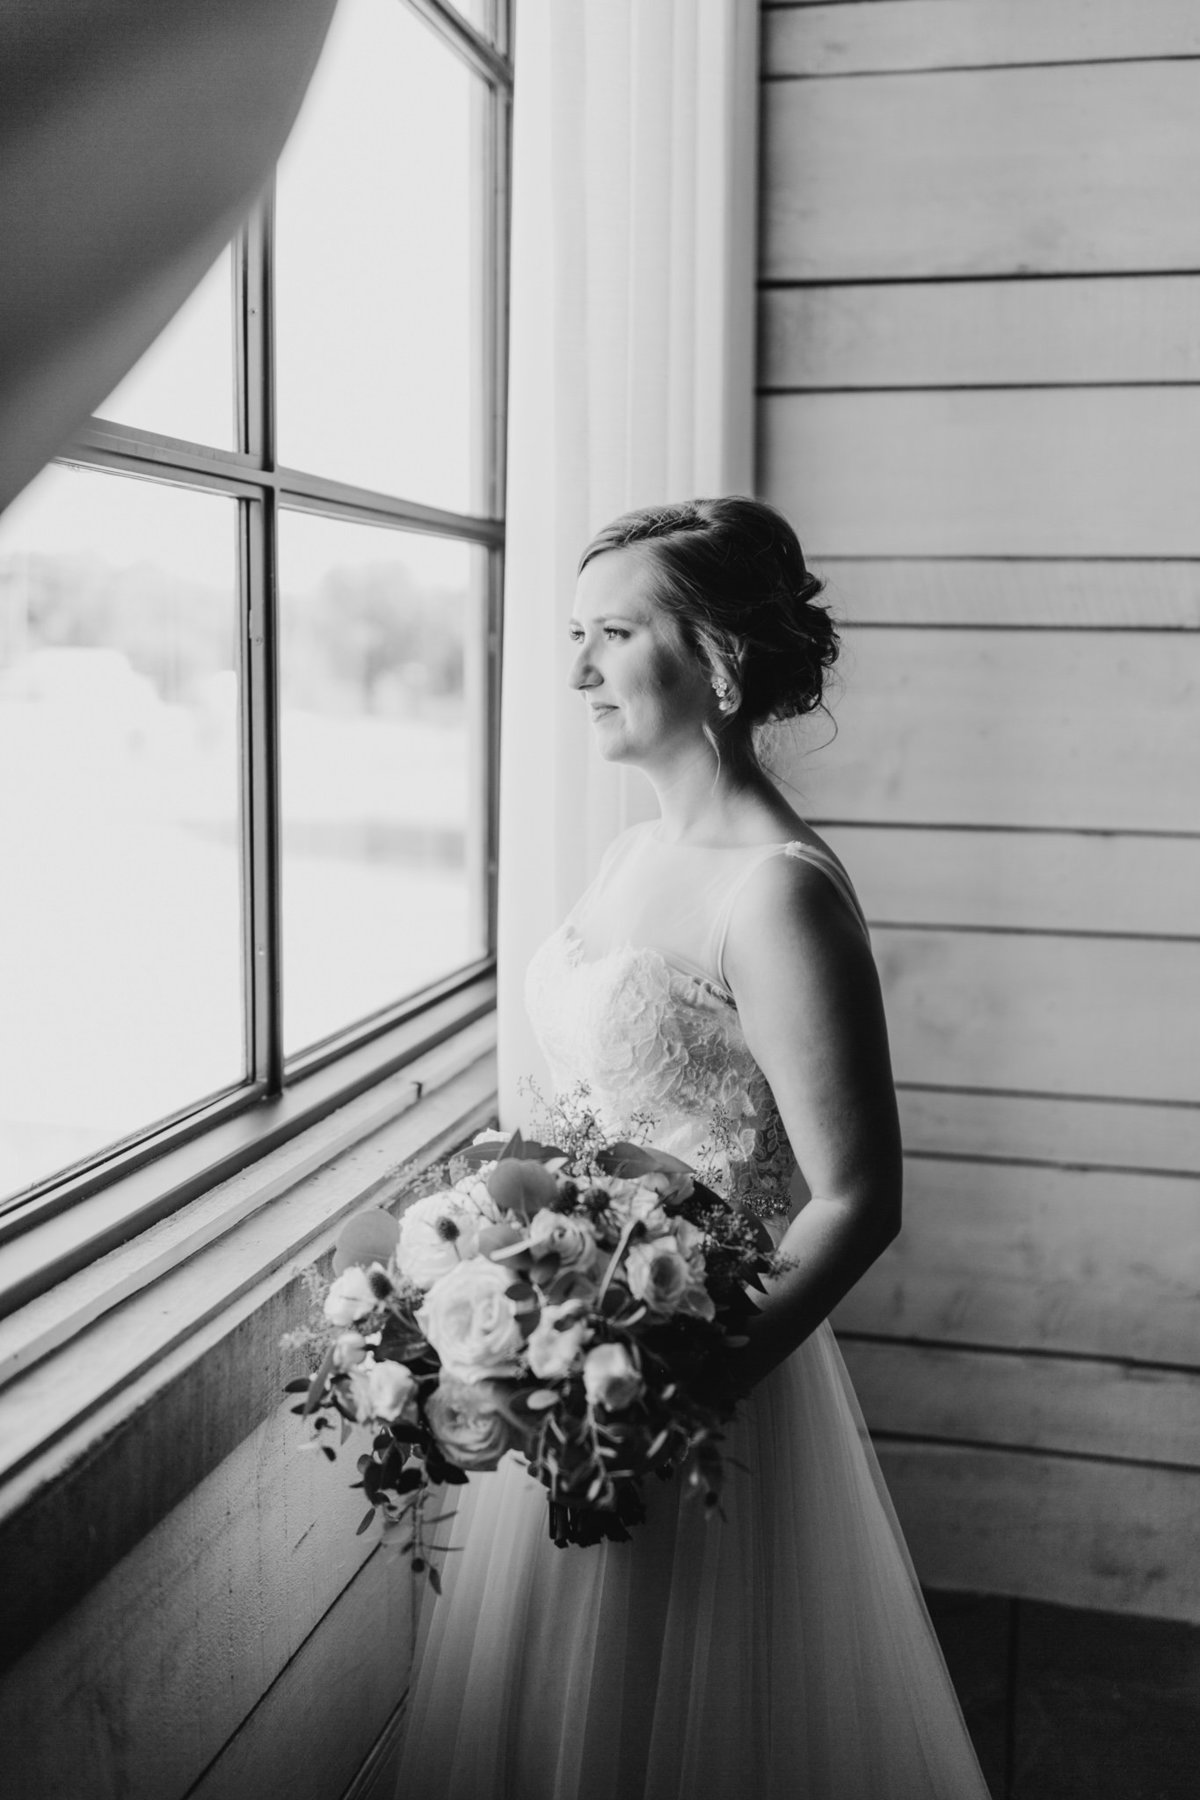 Alexa-Vossler-Photo_Dallas-Wedding-Photographer_North-Texas-Wedding-Photographer_Stephanie-Chase-Wedding-at-Morgan-Creek-Barn-Aubrey-Texas_67